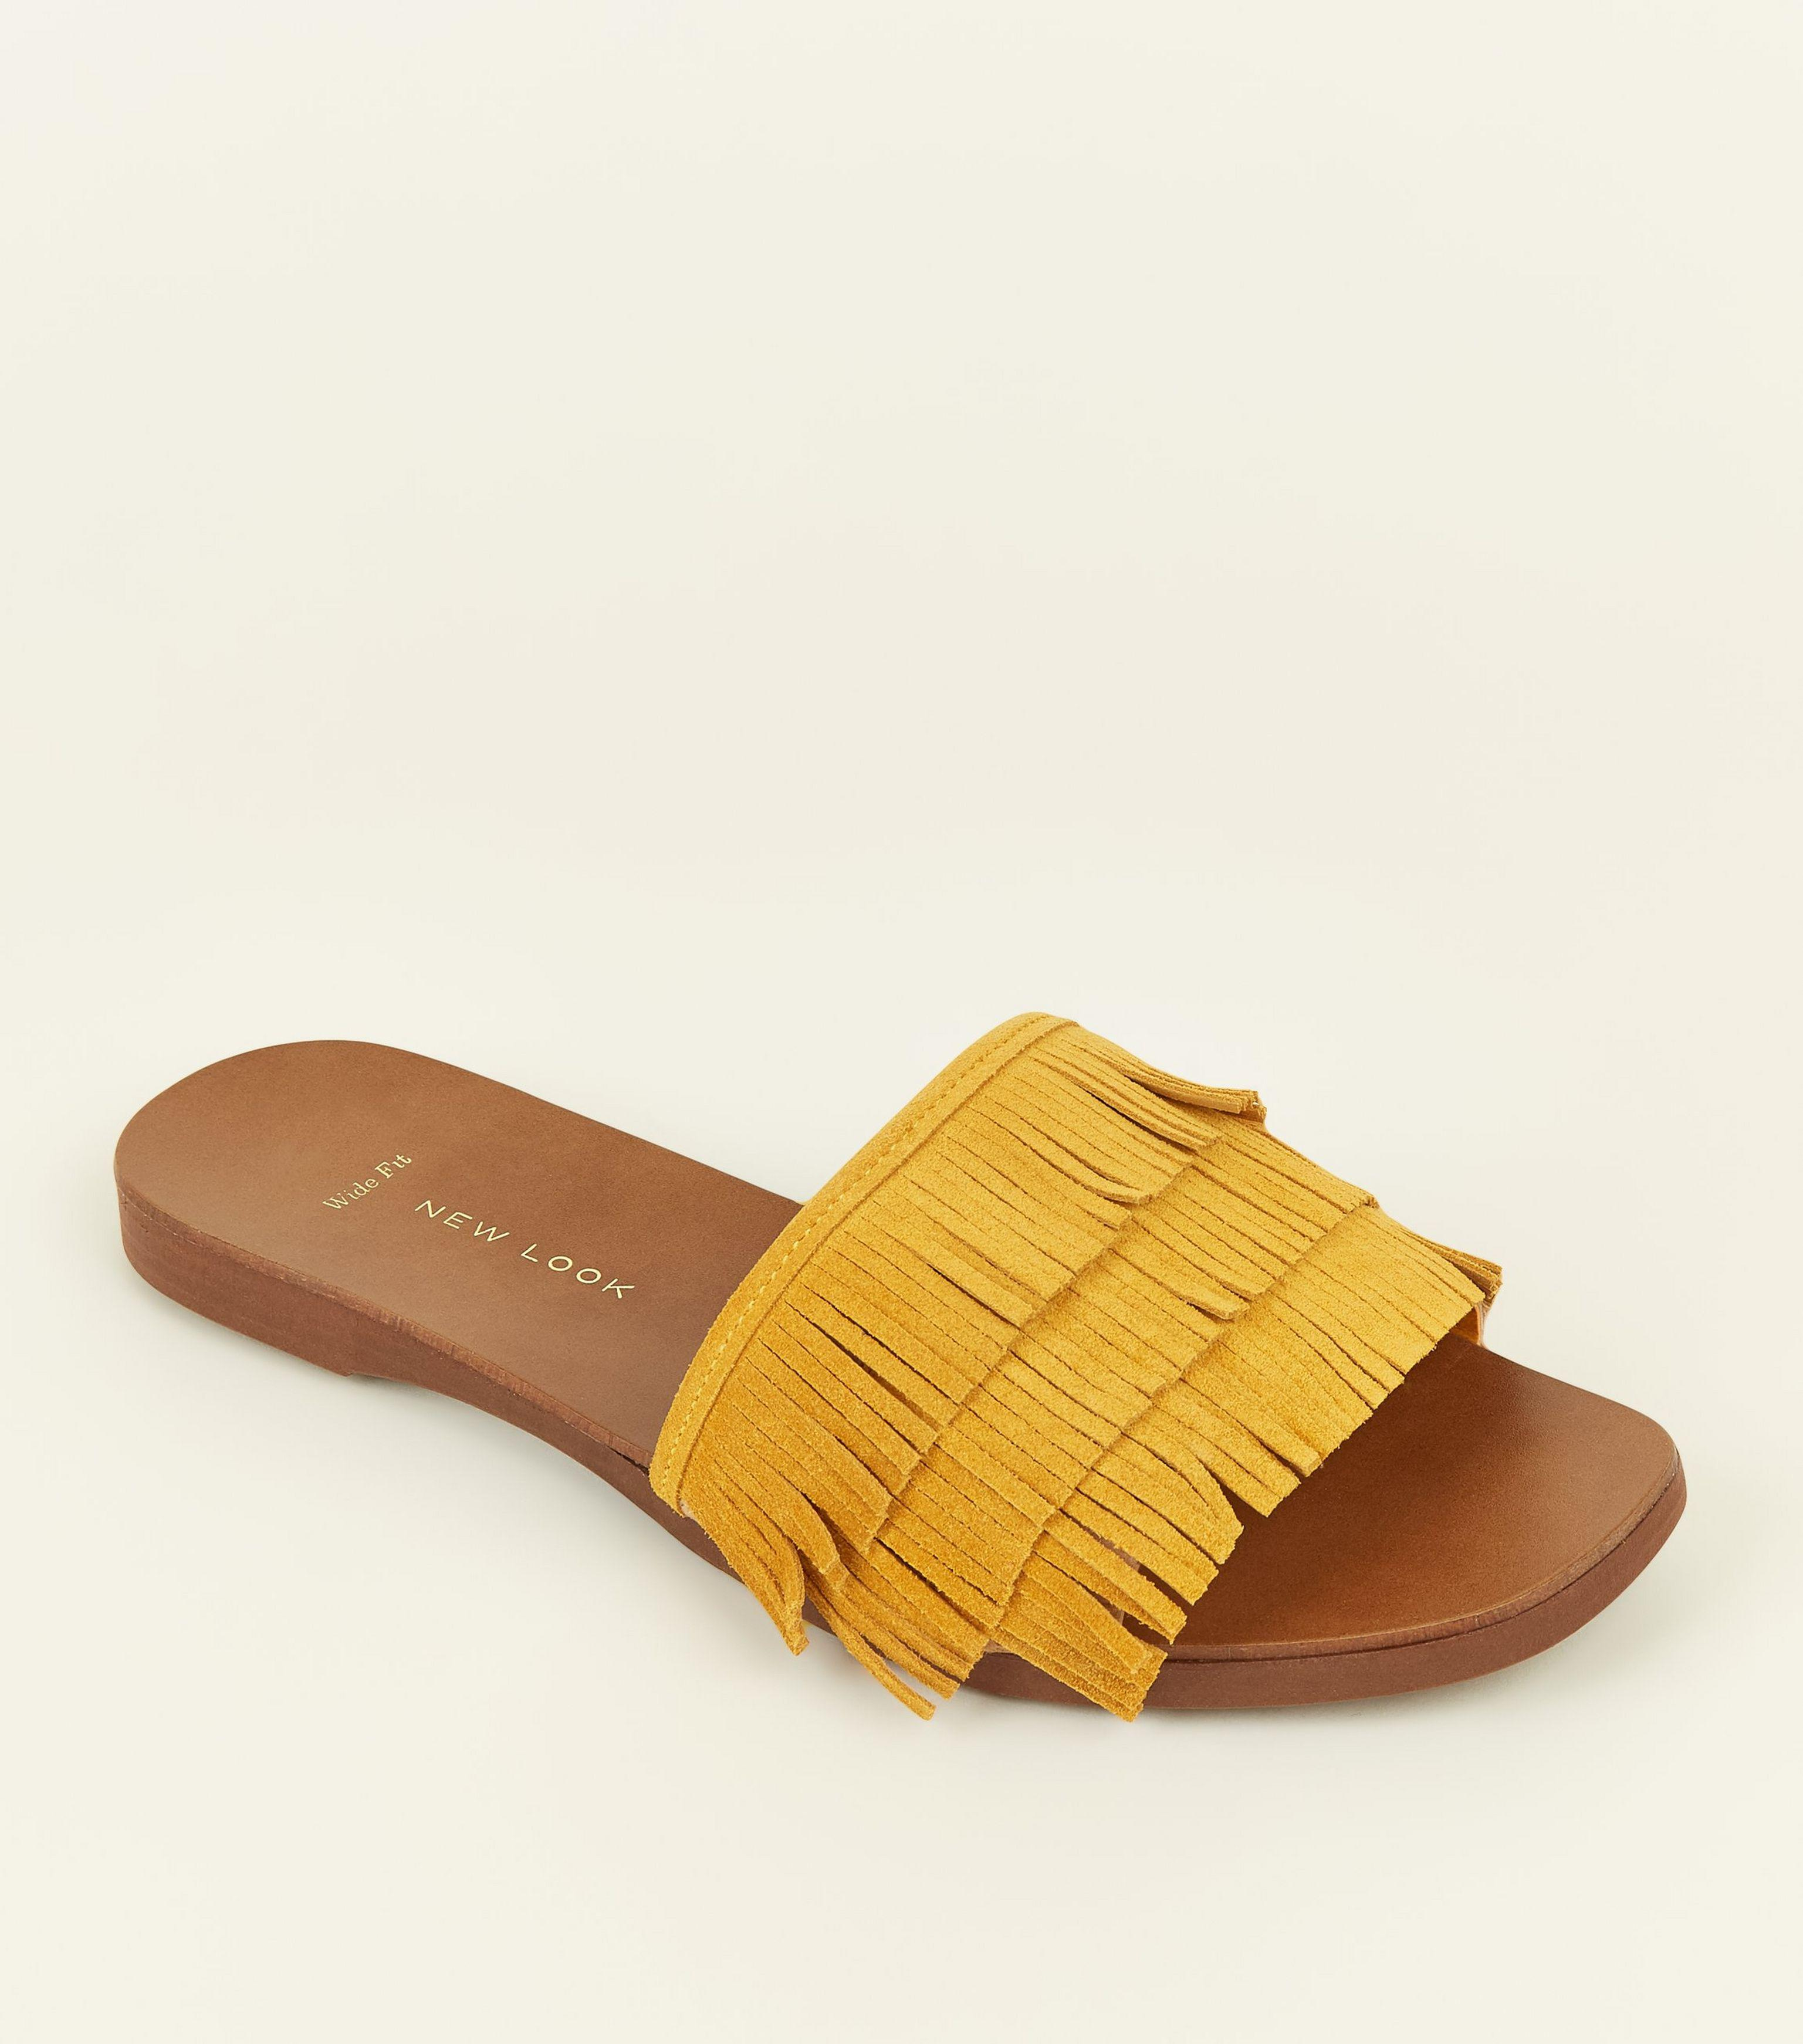 a1b6c7612af5 New Look Wide Fit Mustard Suede Fringed Sliders in Yellow - Lyst